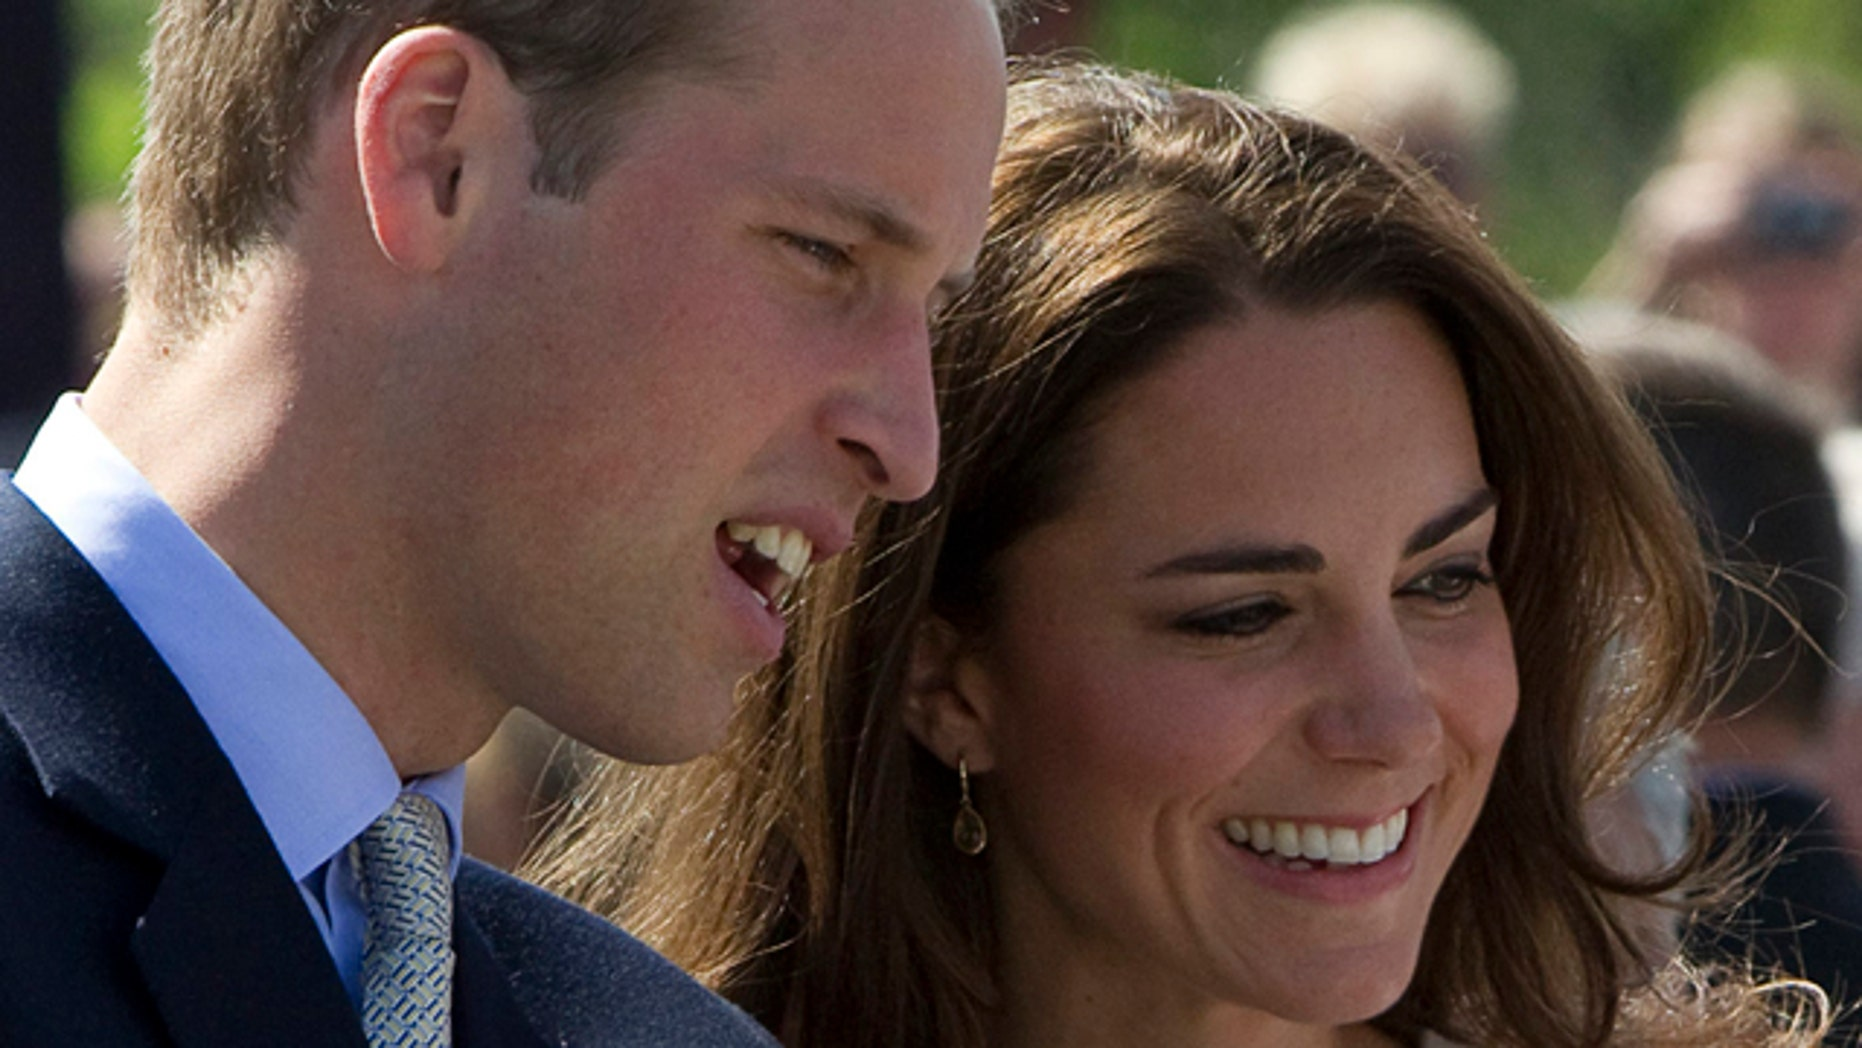 July 5: Prince William, and his wife, Kate, the Duke and Duchess of Cambridge, greet their admirers in Yellowknife, Northwest Territories.